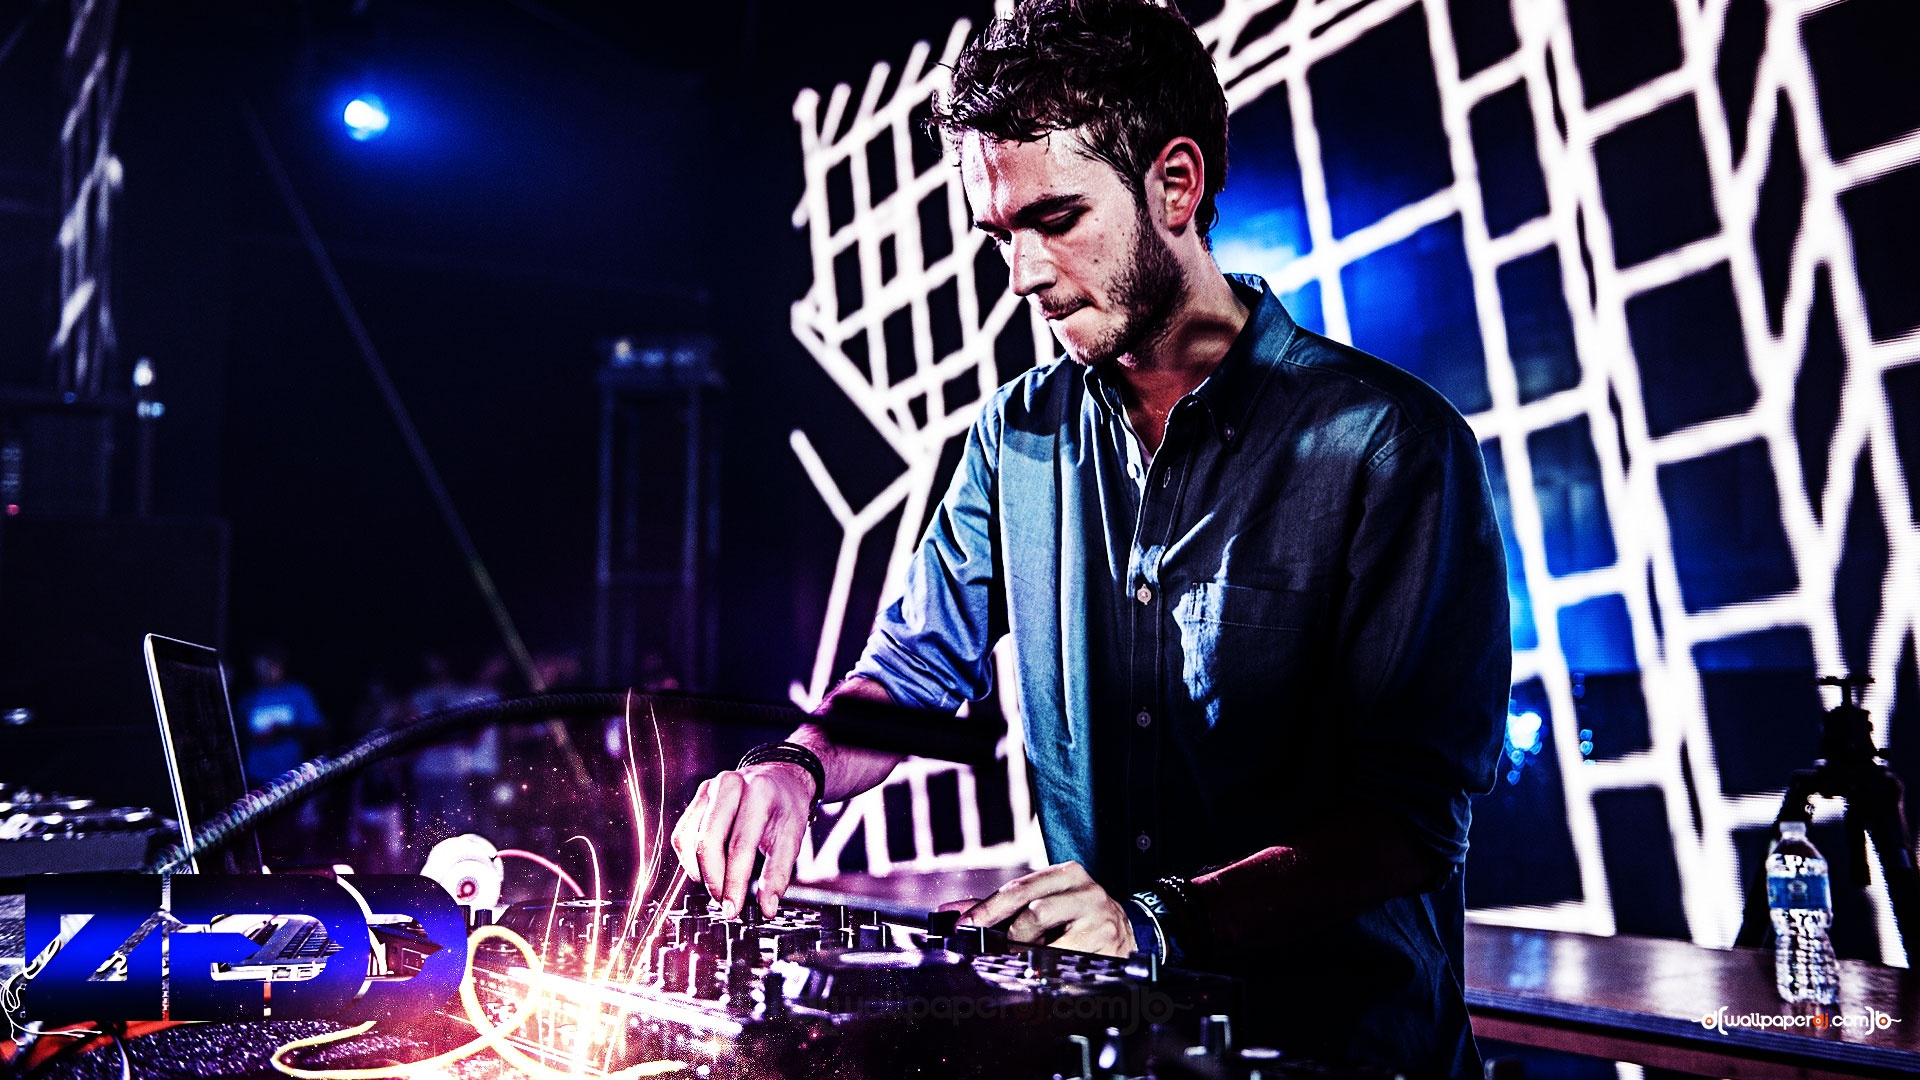 1920x1080 Dj Zedd wallpaper, music and dance wallpapers